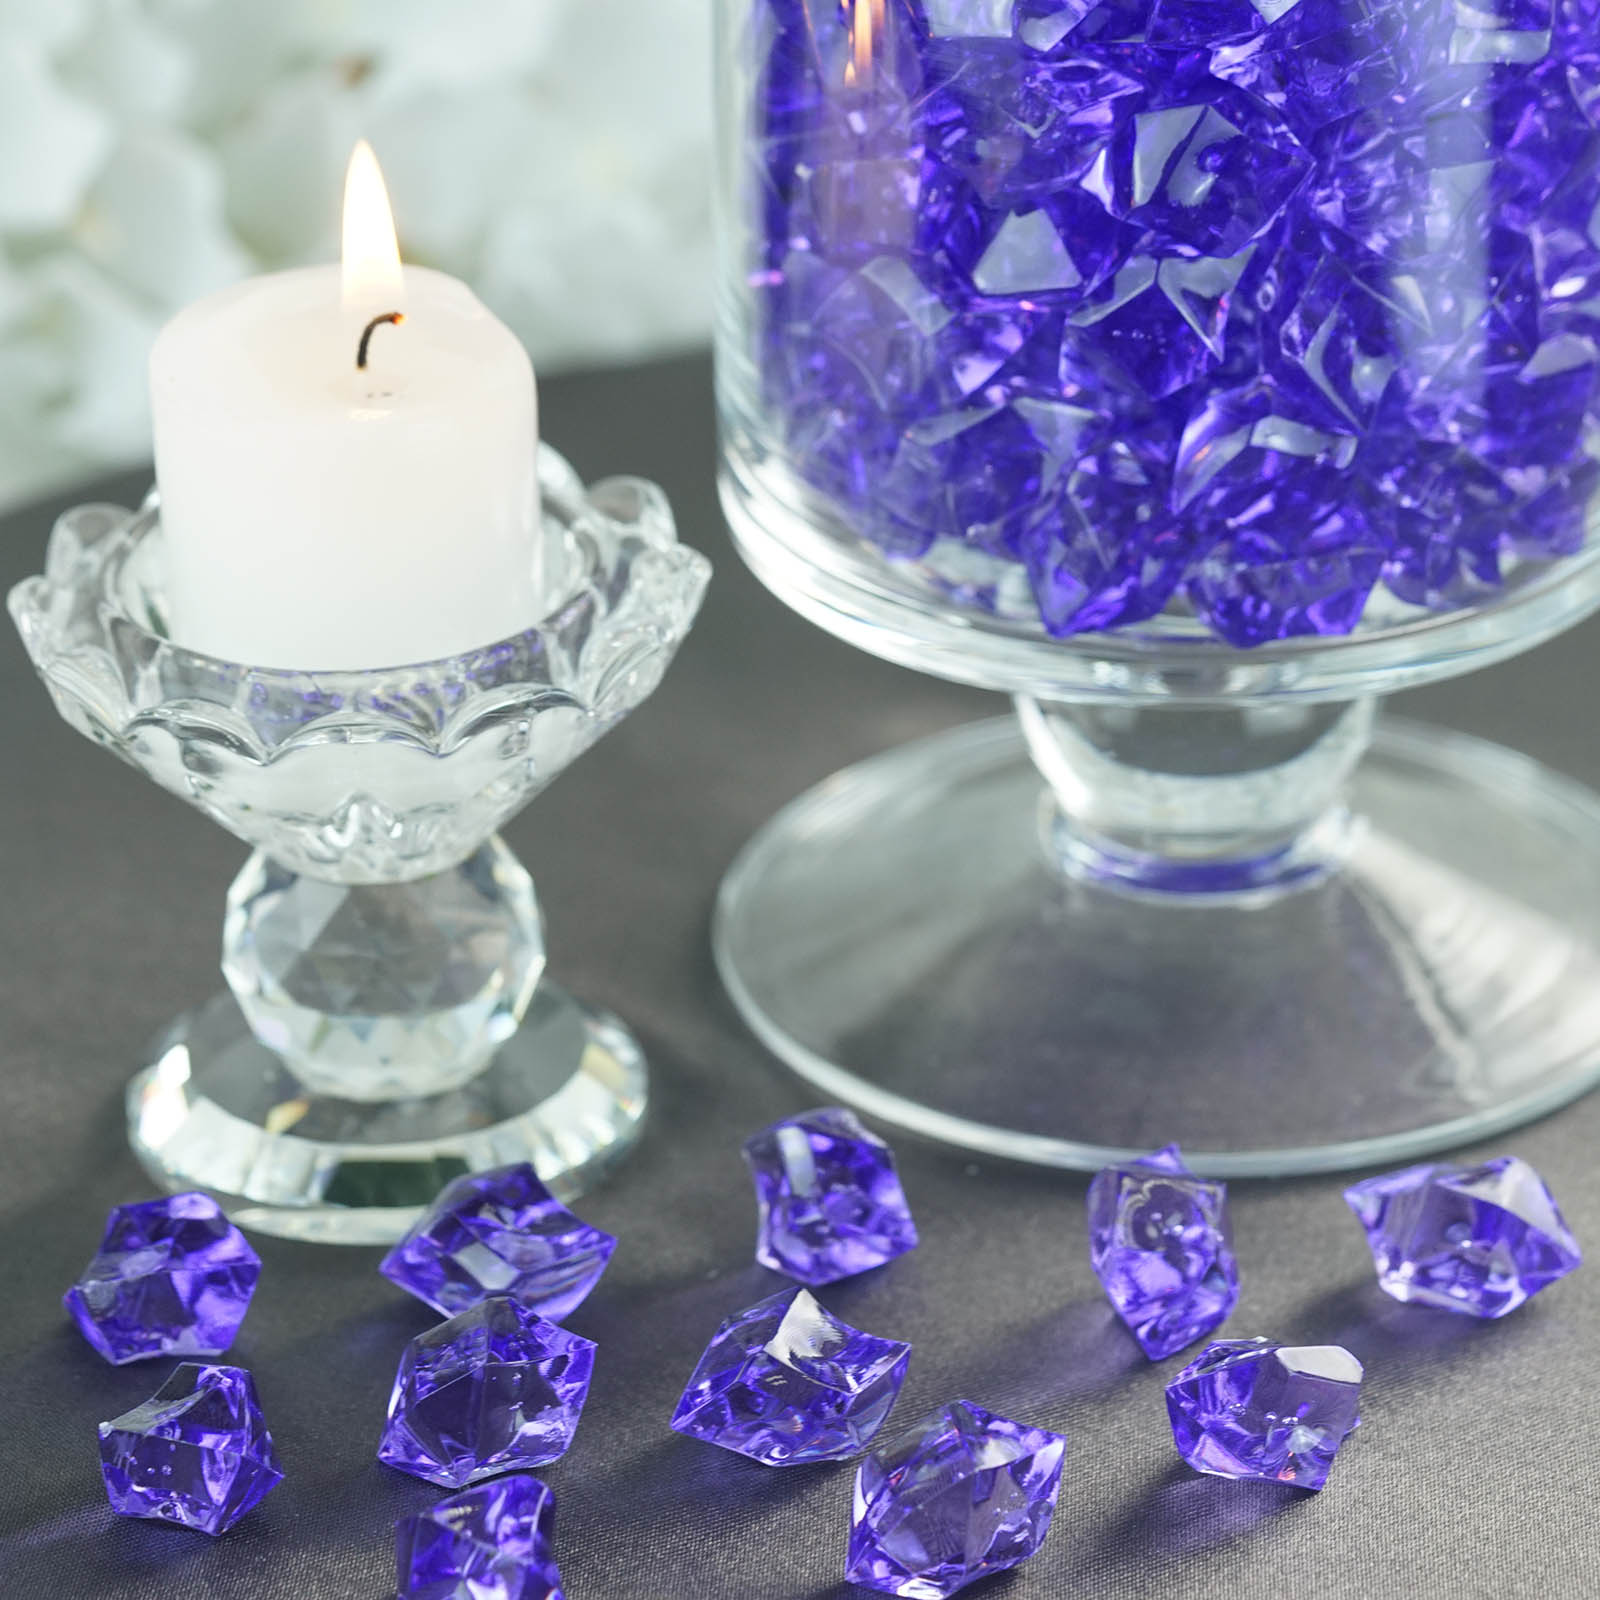 300-Acrylic-Ice-CRYSTAL-LIKE-Pieces-Wedding-Centerpieces-Decorations-Supplies thumbnail 50